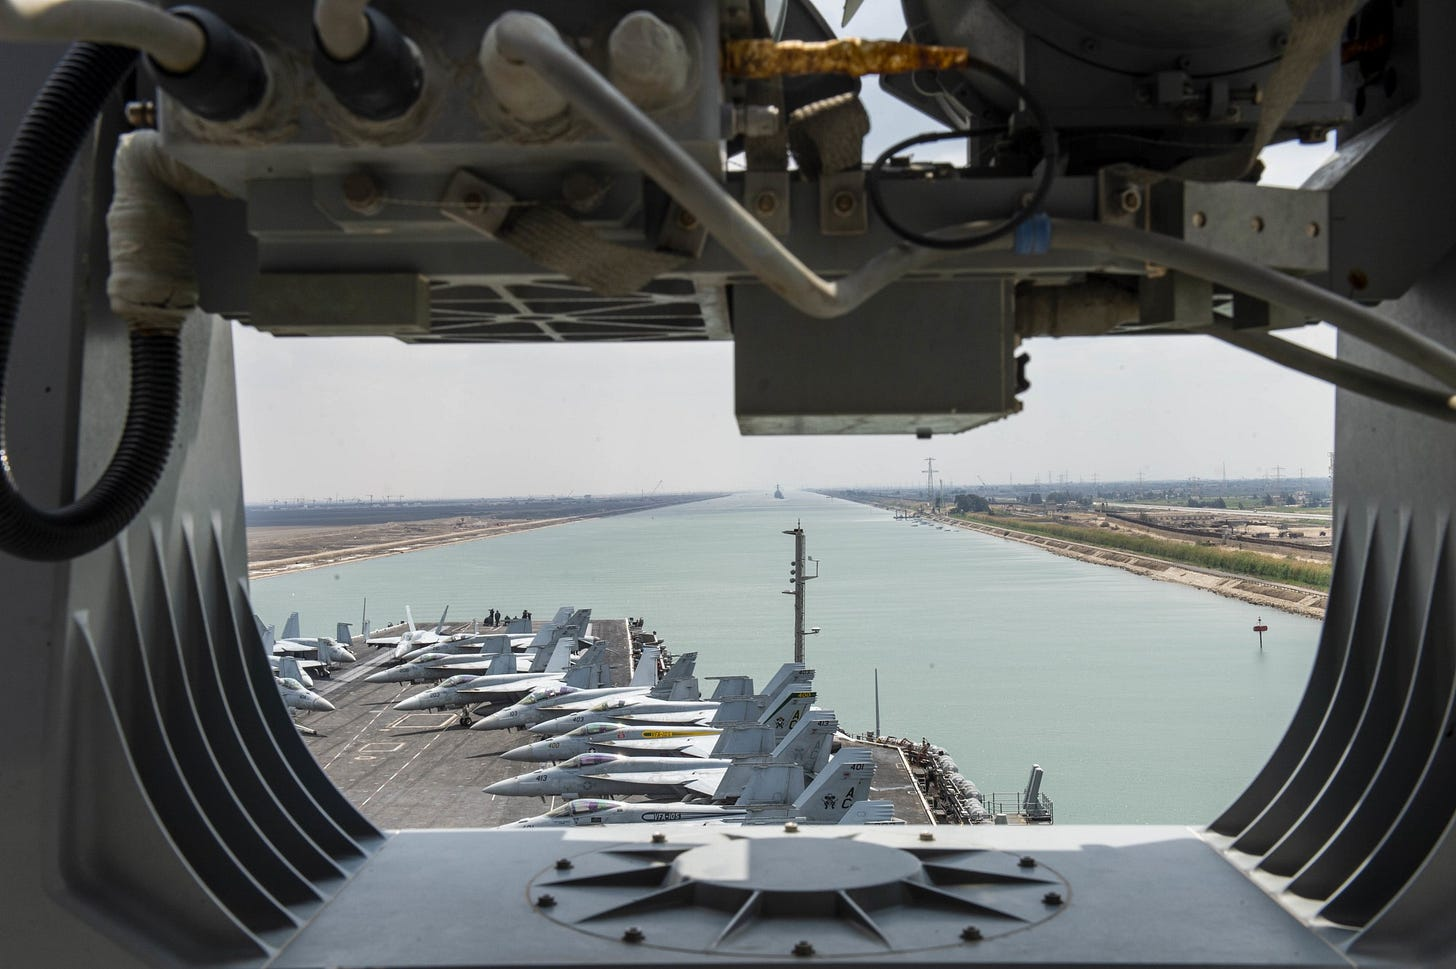 An aircraft carrier transits the Suez Canal. It has many planes on deck.